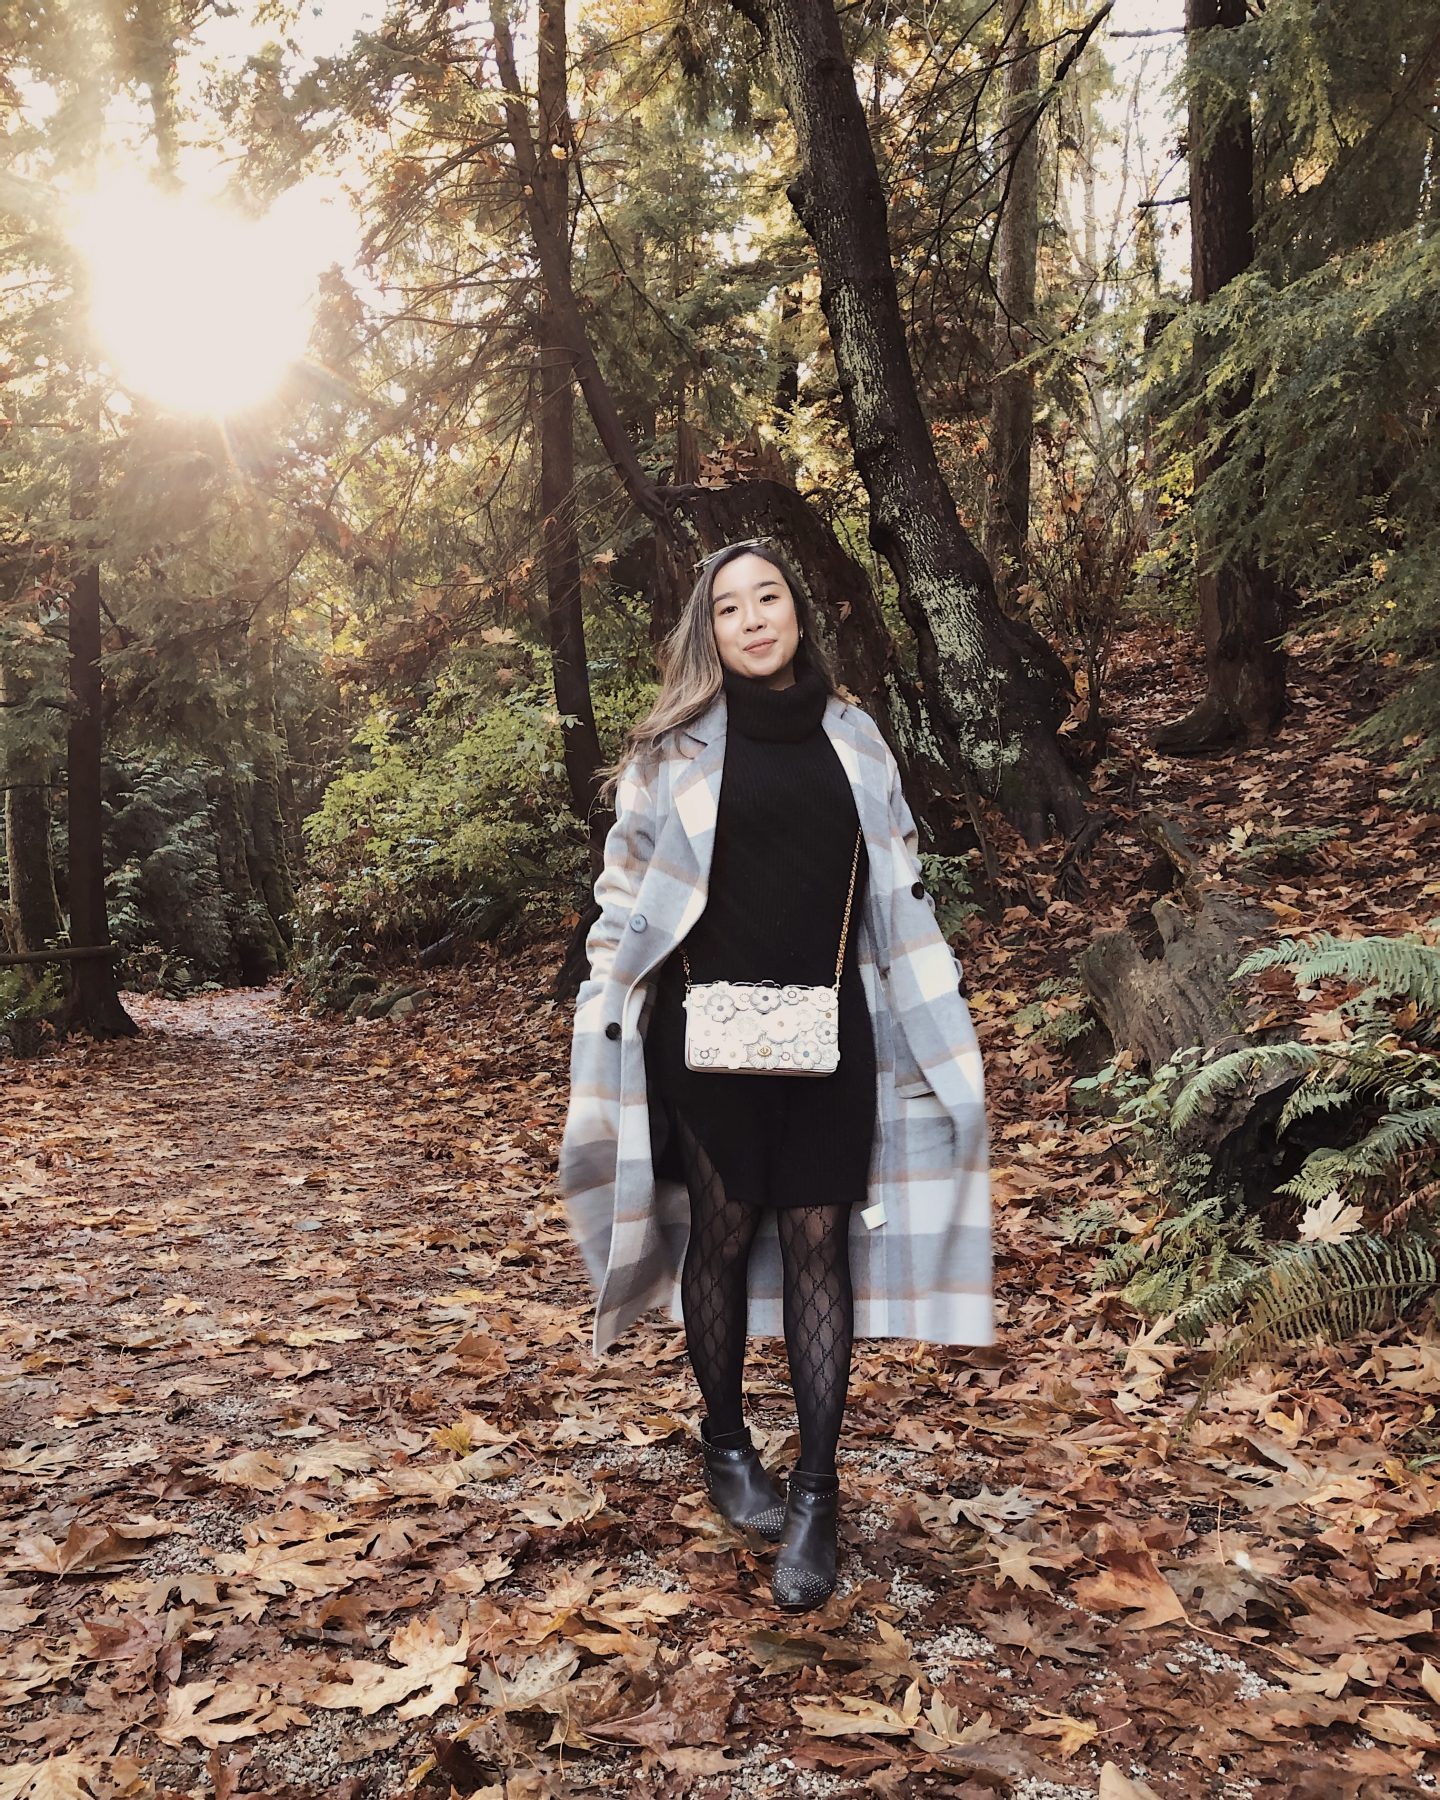 Strolling through the fall leaves with my fall plaid coat in the sun